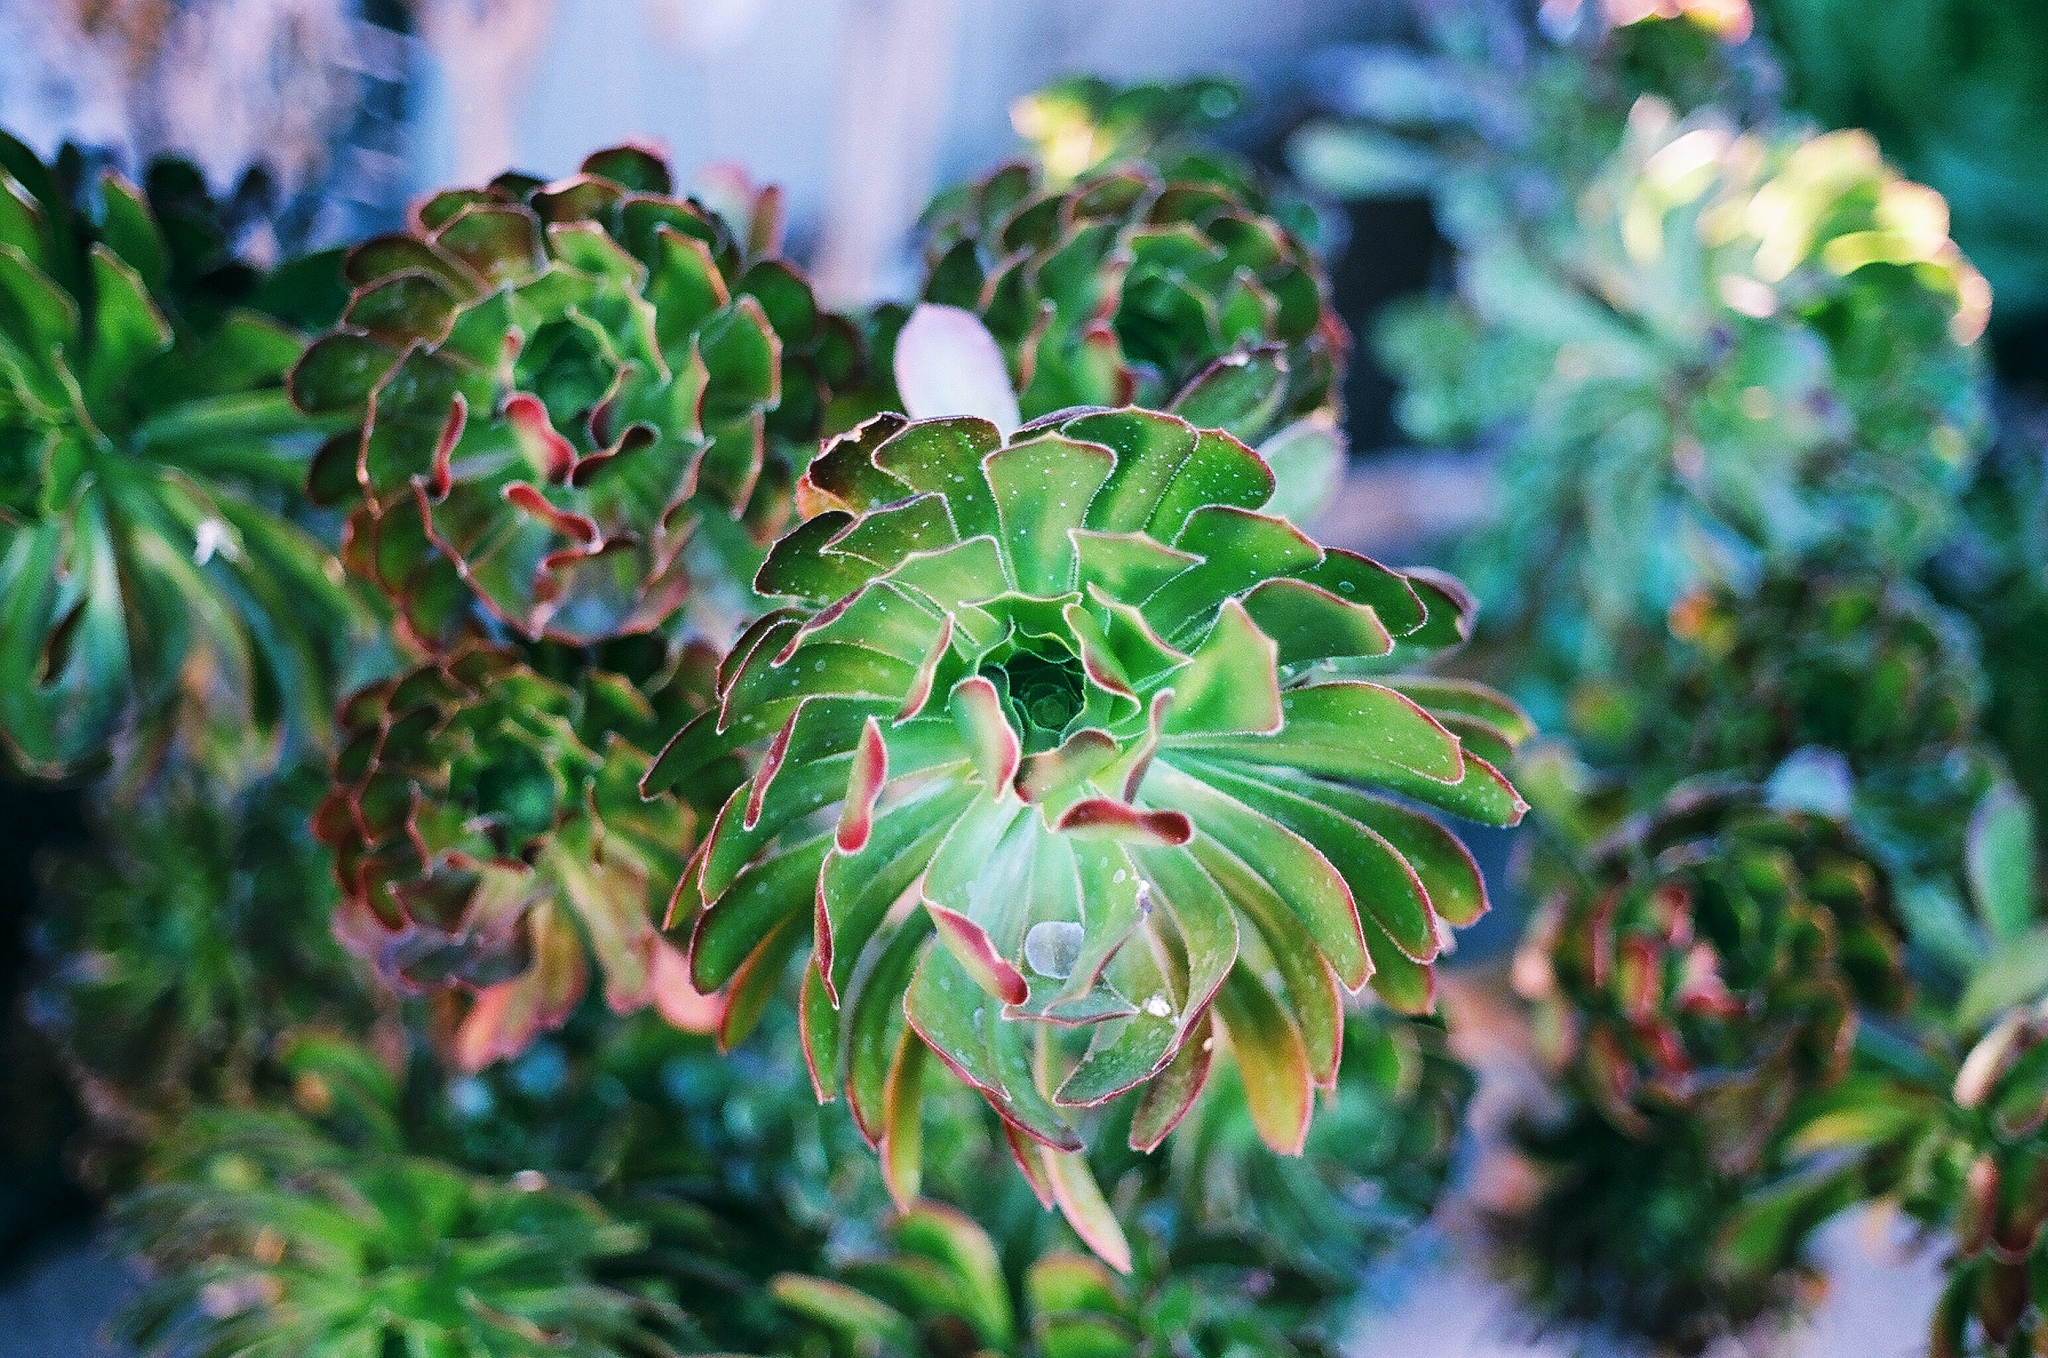 Summer Nights Kodak Ektar 100 Film - Succulents by Ellingsen Photography